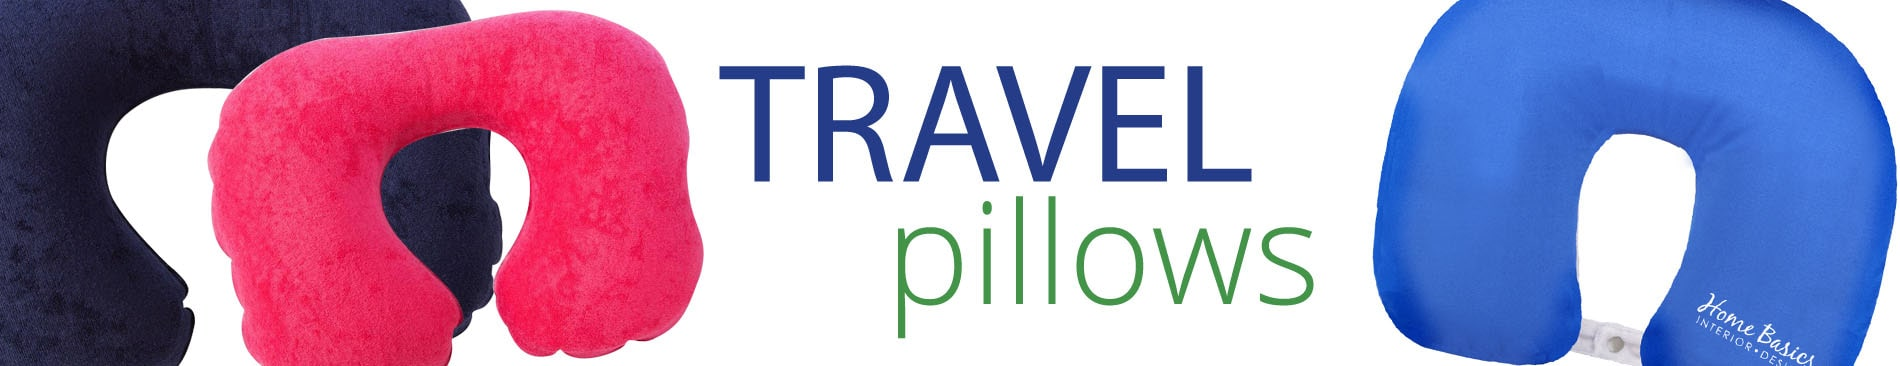 promotional travel pillows